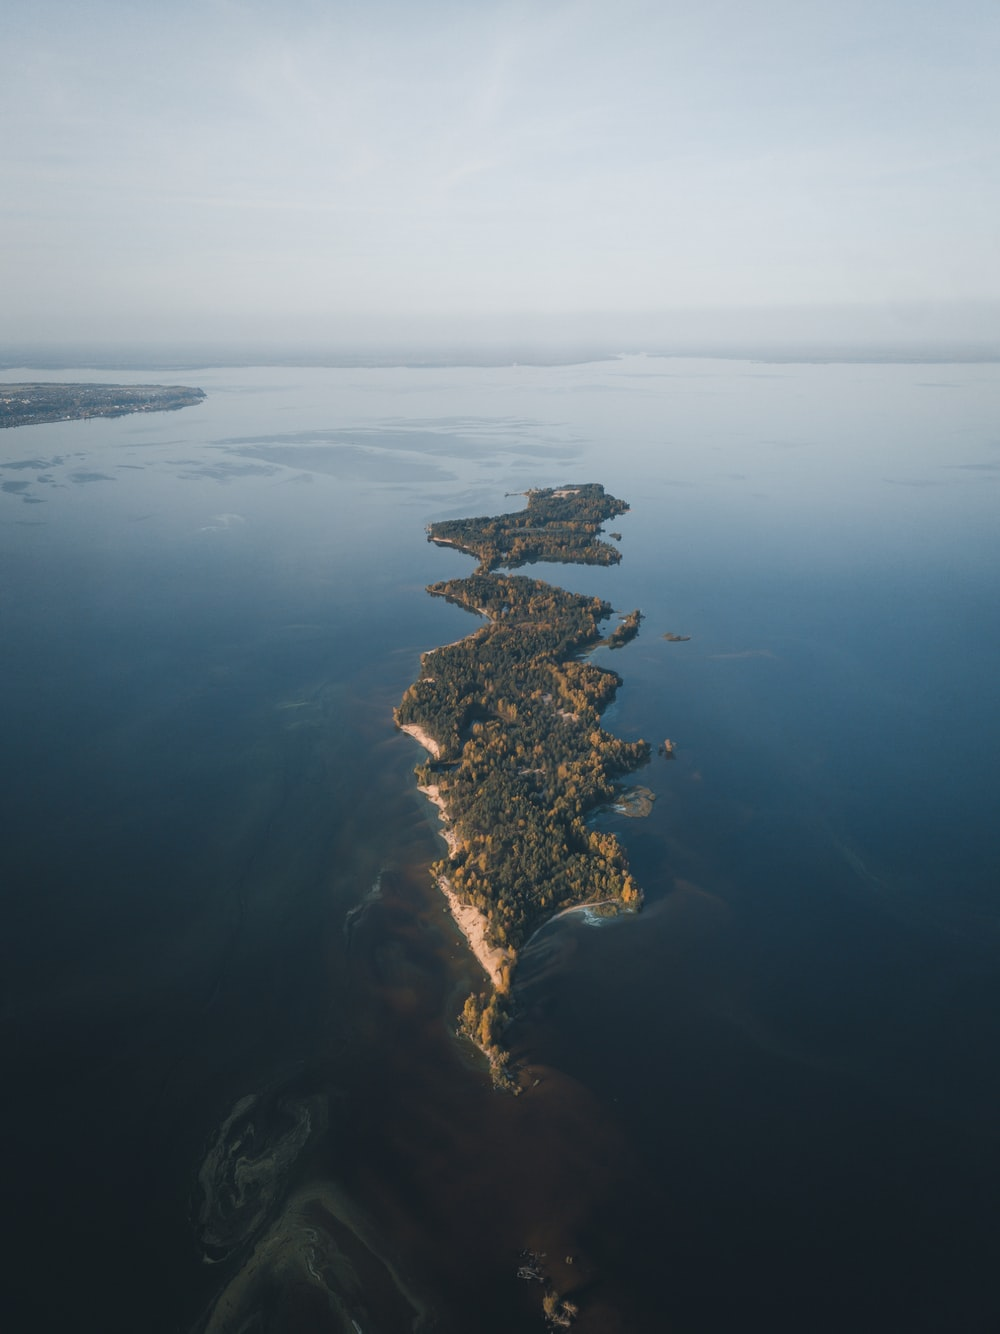 aerial view of island during daytime